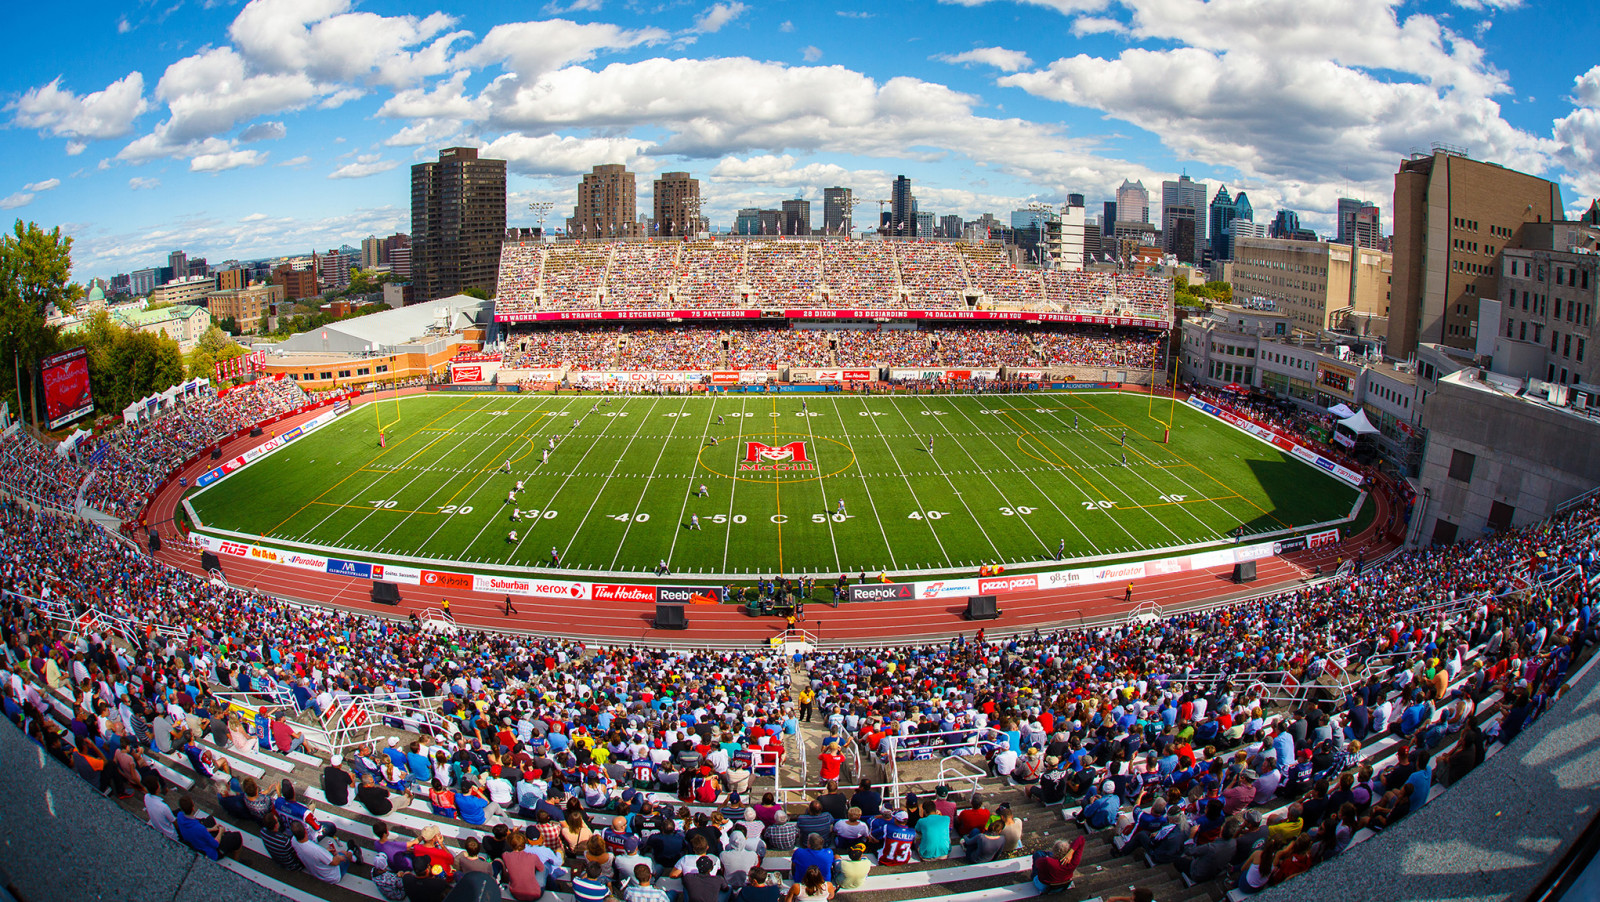 Update of the Alouettes App - Montreal Alouettes